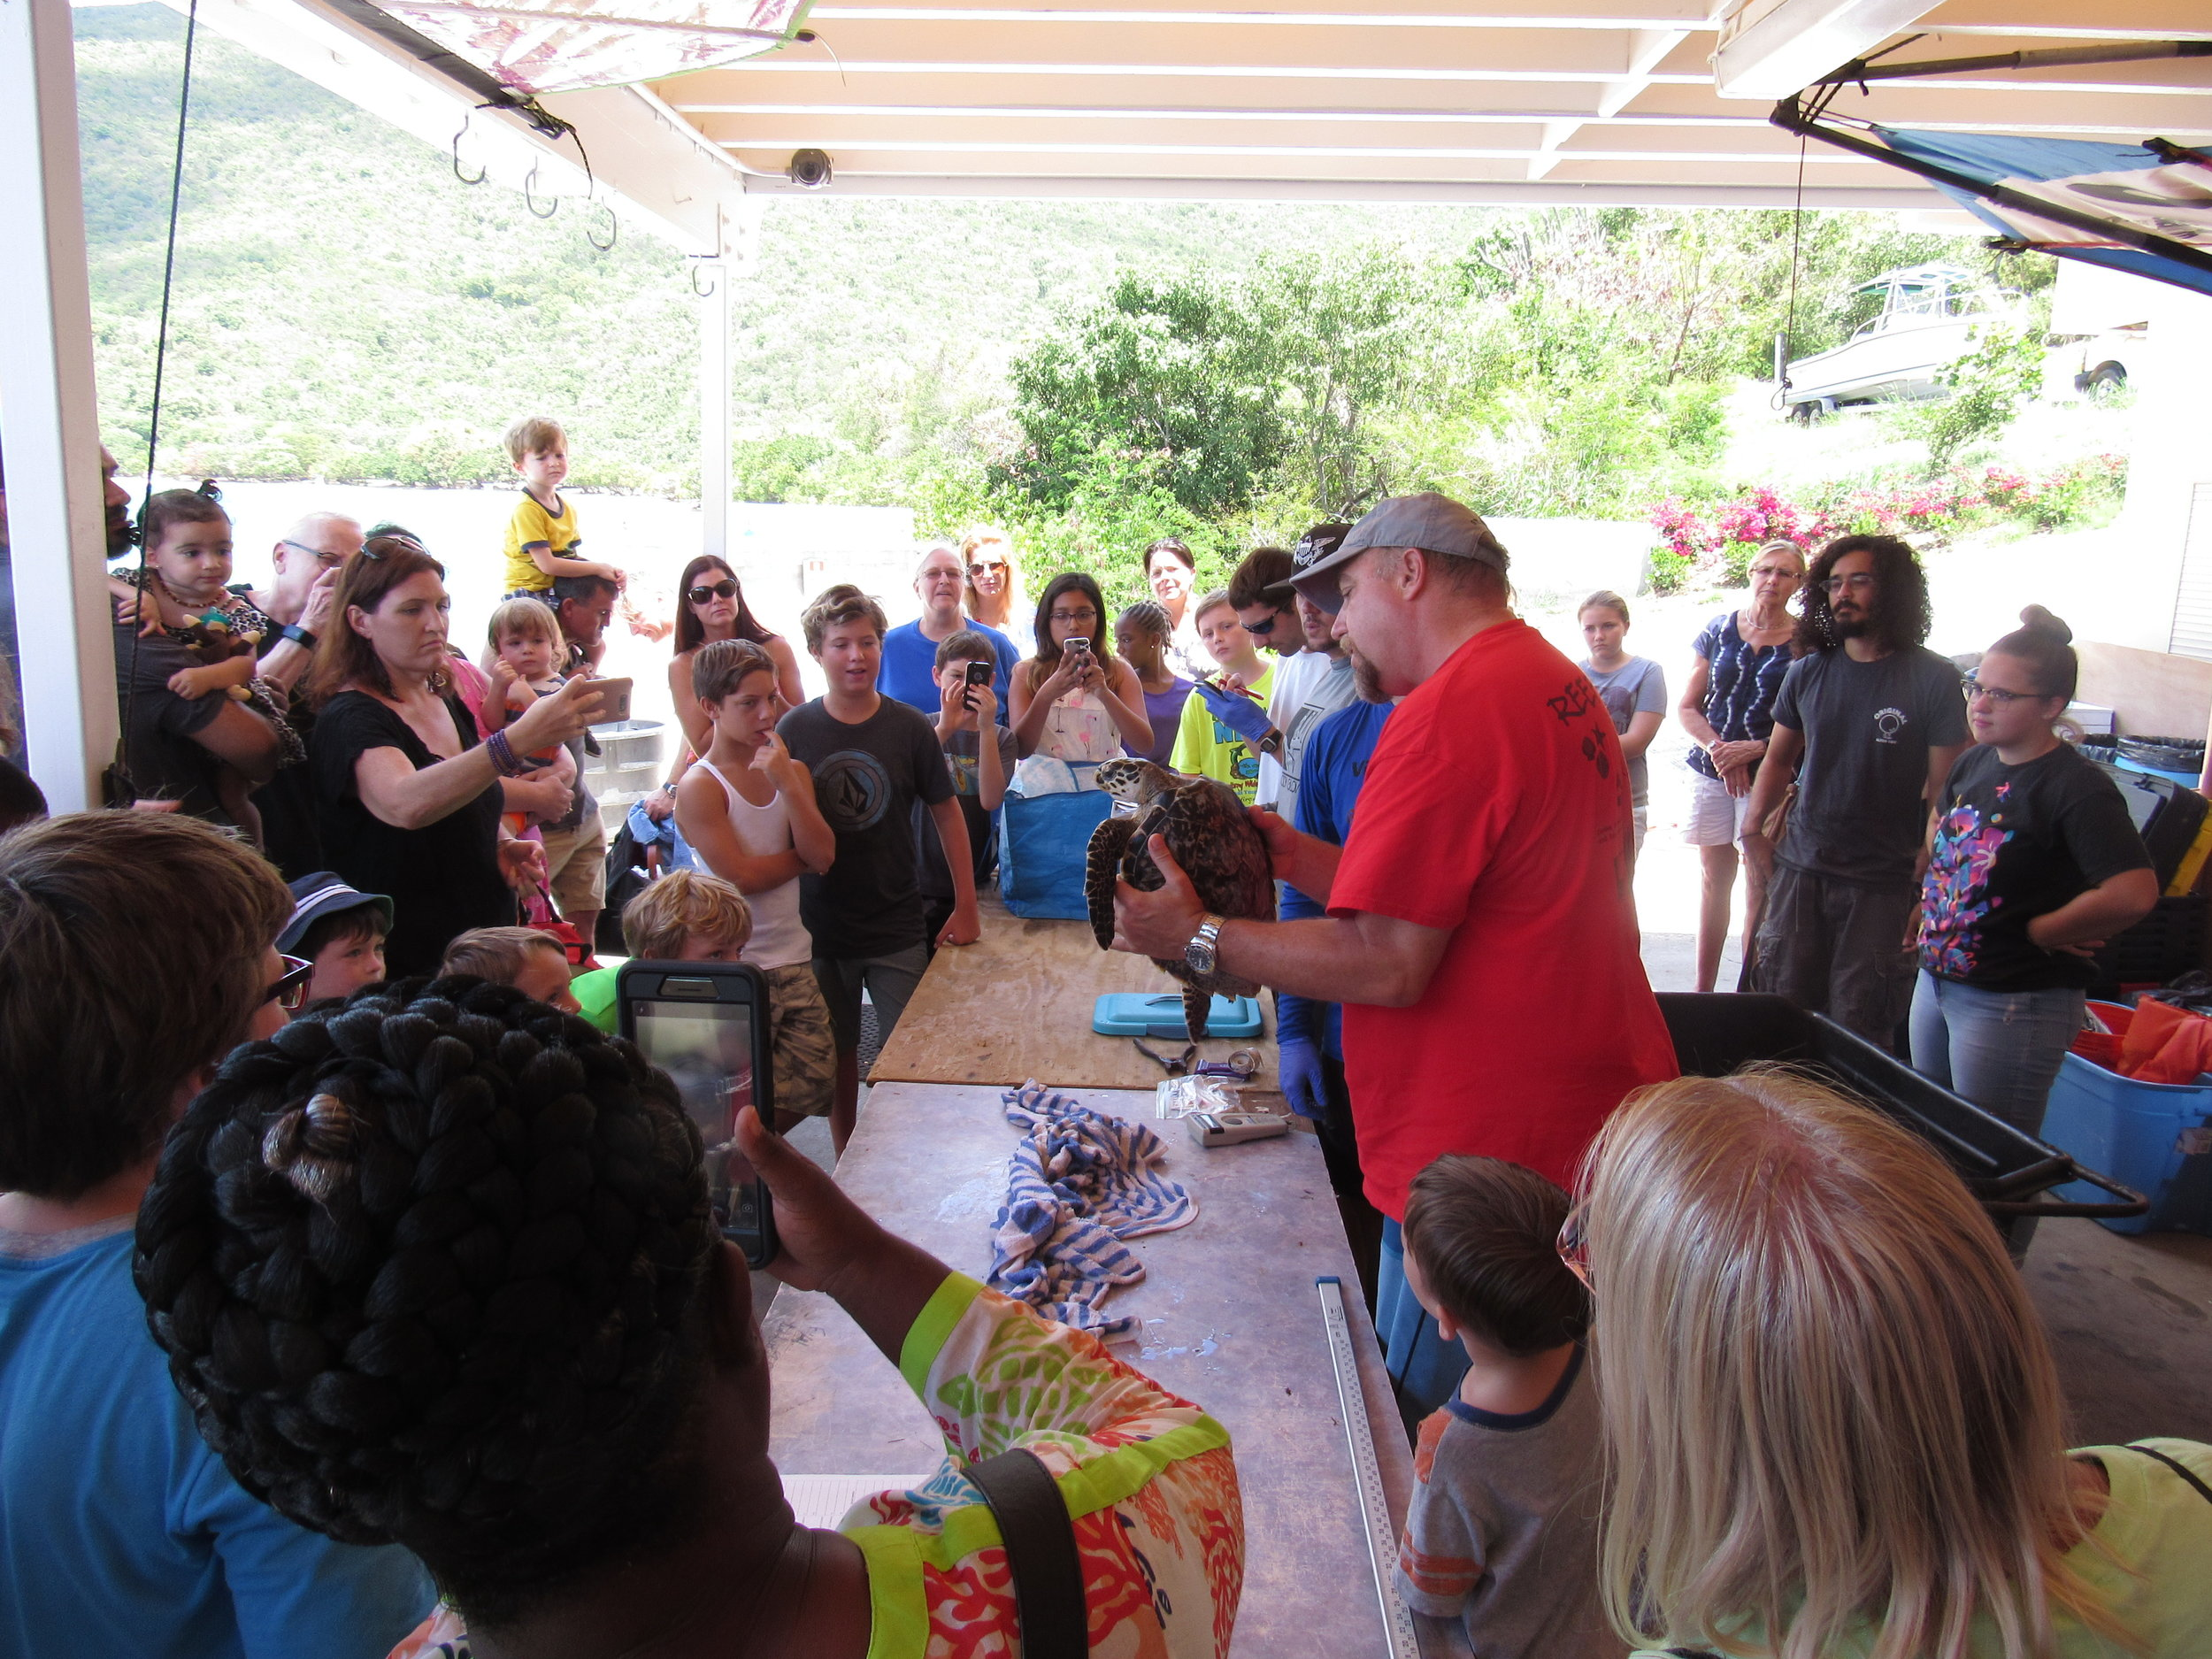 Dr. Jobsis presents a juvenile Hawksbill sea turtle,  Eretmochelys imbricata  ,  to a captivated group. All work is conducted pursuant to a National Marine Fisheries Service permit.